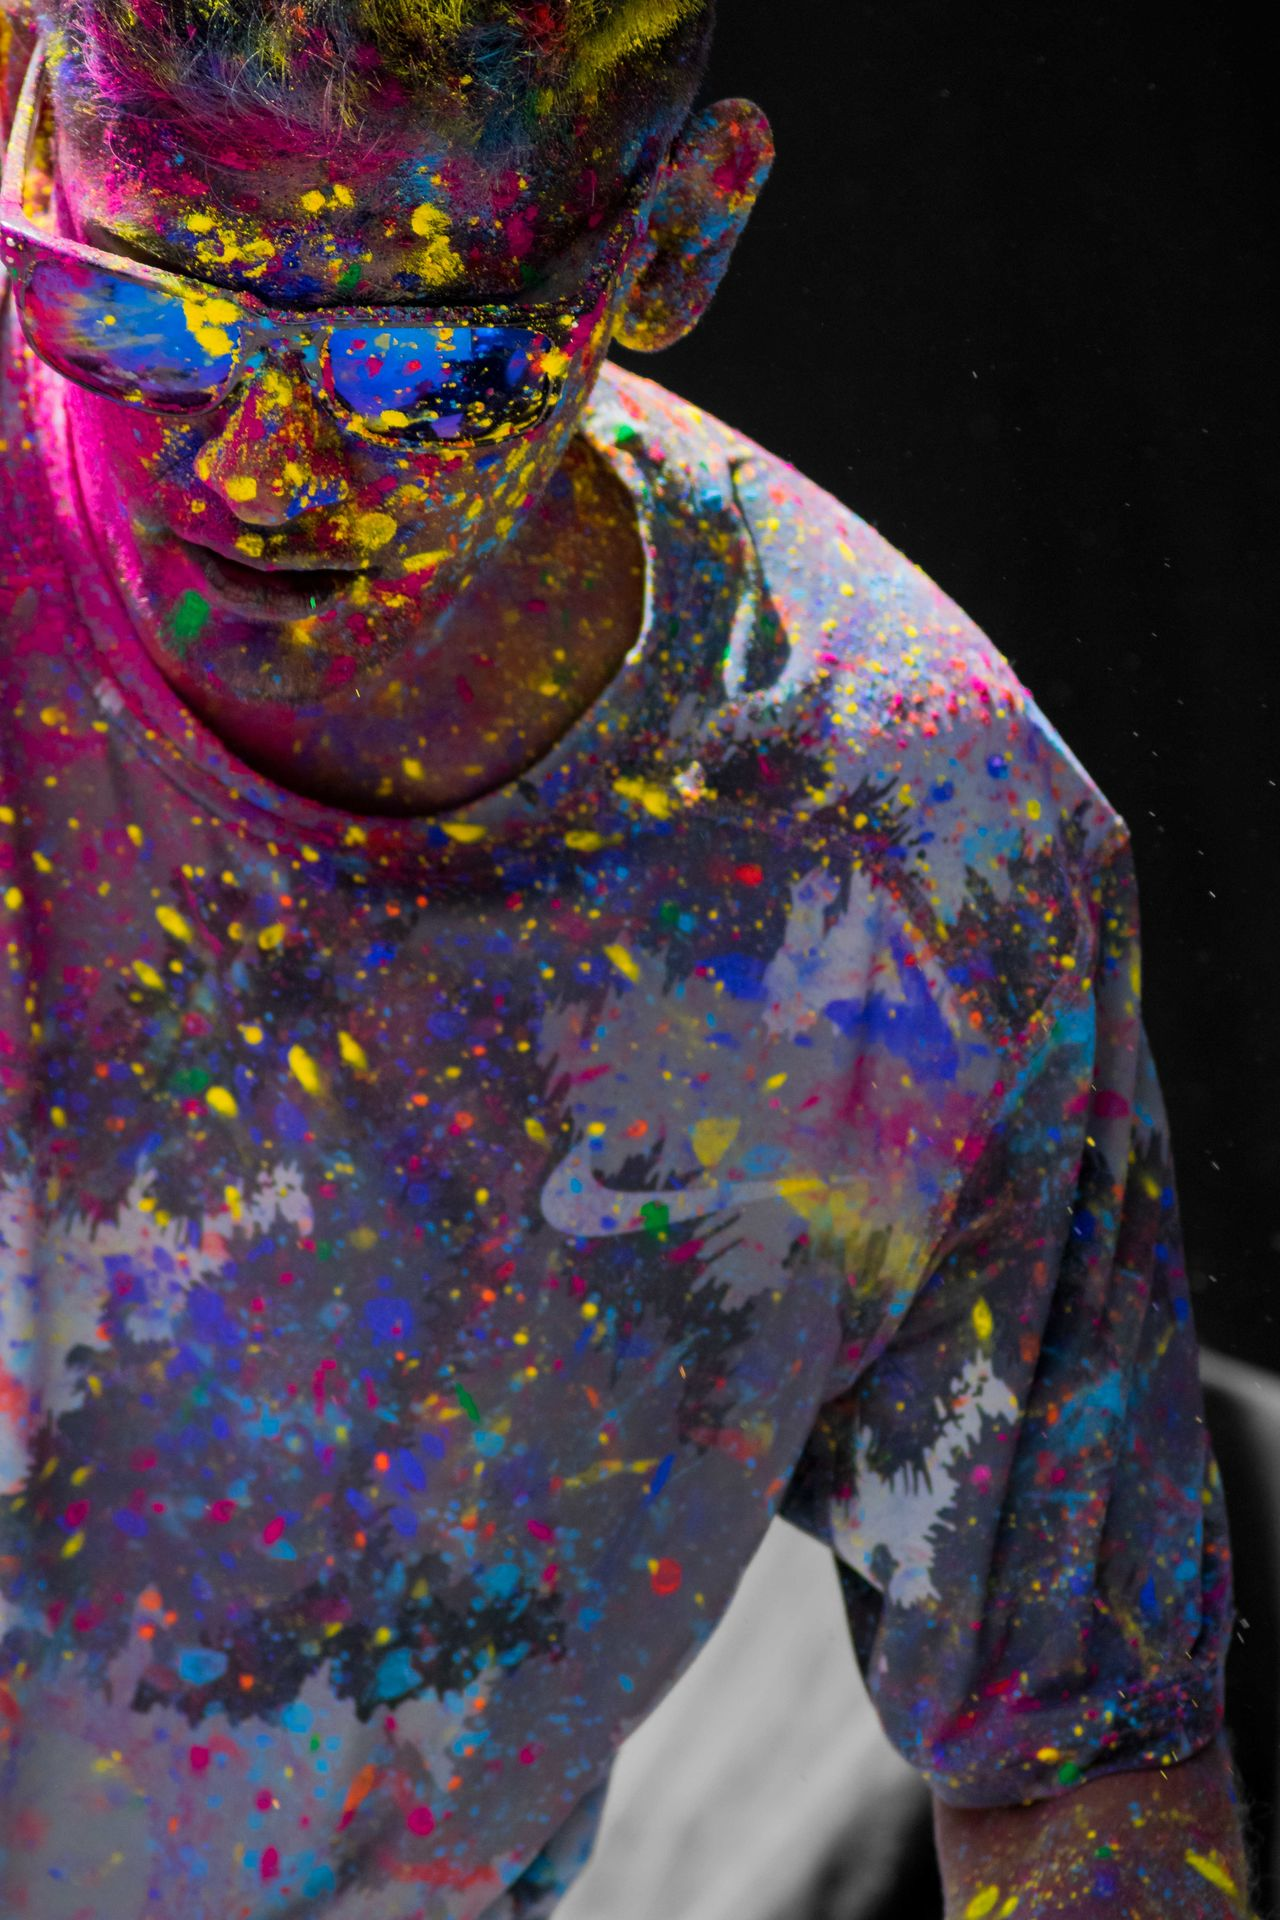 Holi is a special time of year to remember those who are close to our hearts with splashing colors! ADK Black Background Close-up Day Holi Colors Holi Festival Holi Festival Of Colours Holi Powder Indoors  Malaysia Truly Asia Multi Colored Oil Spill One Person Paint People Real People